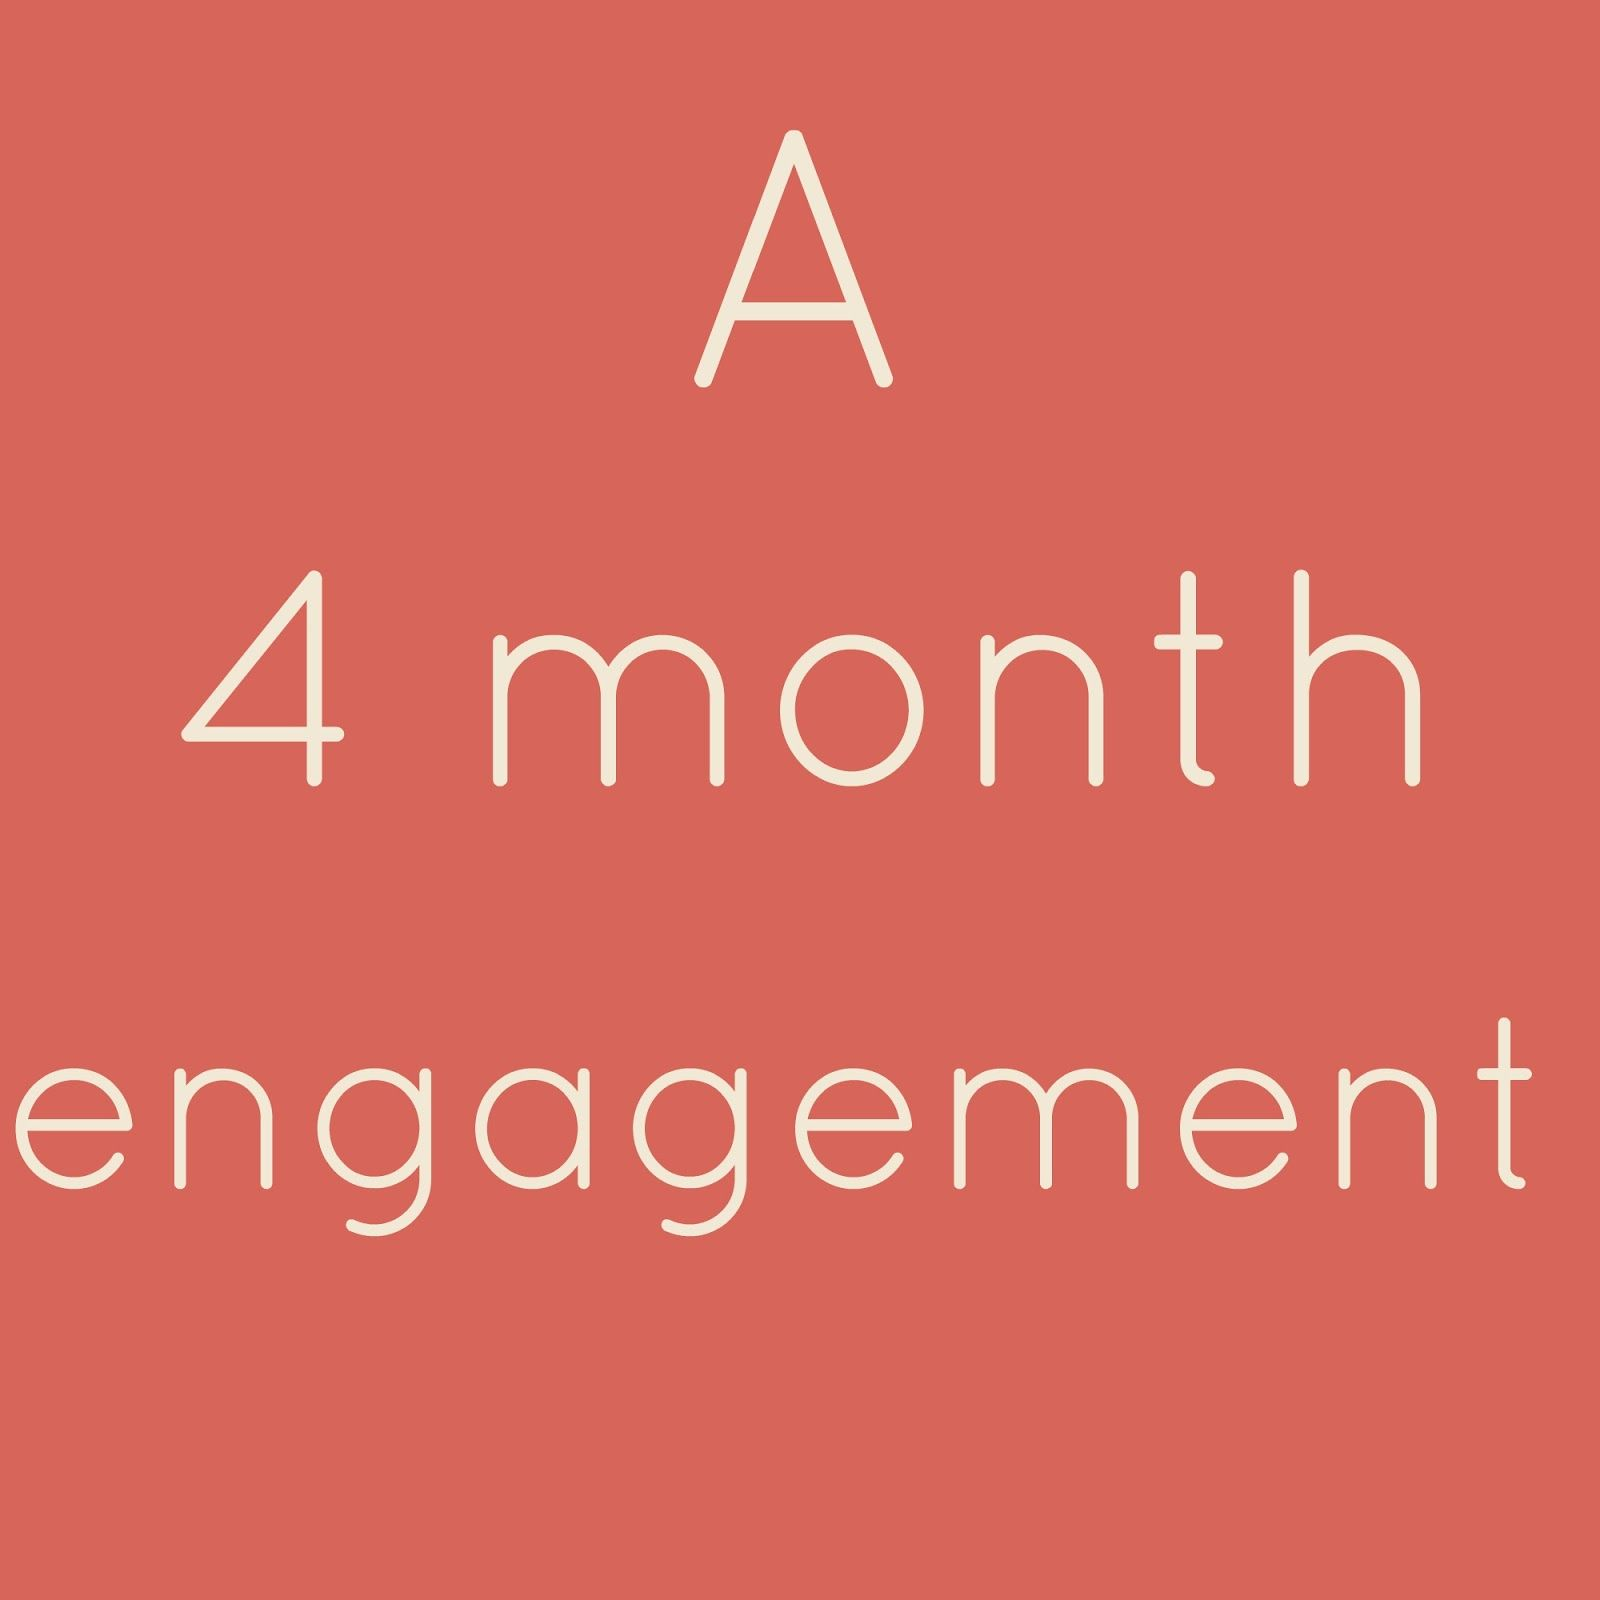 4 Month Engagement Wedding Planning Checklist He Wants A Short So Much To Do When